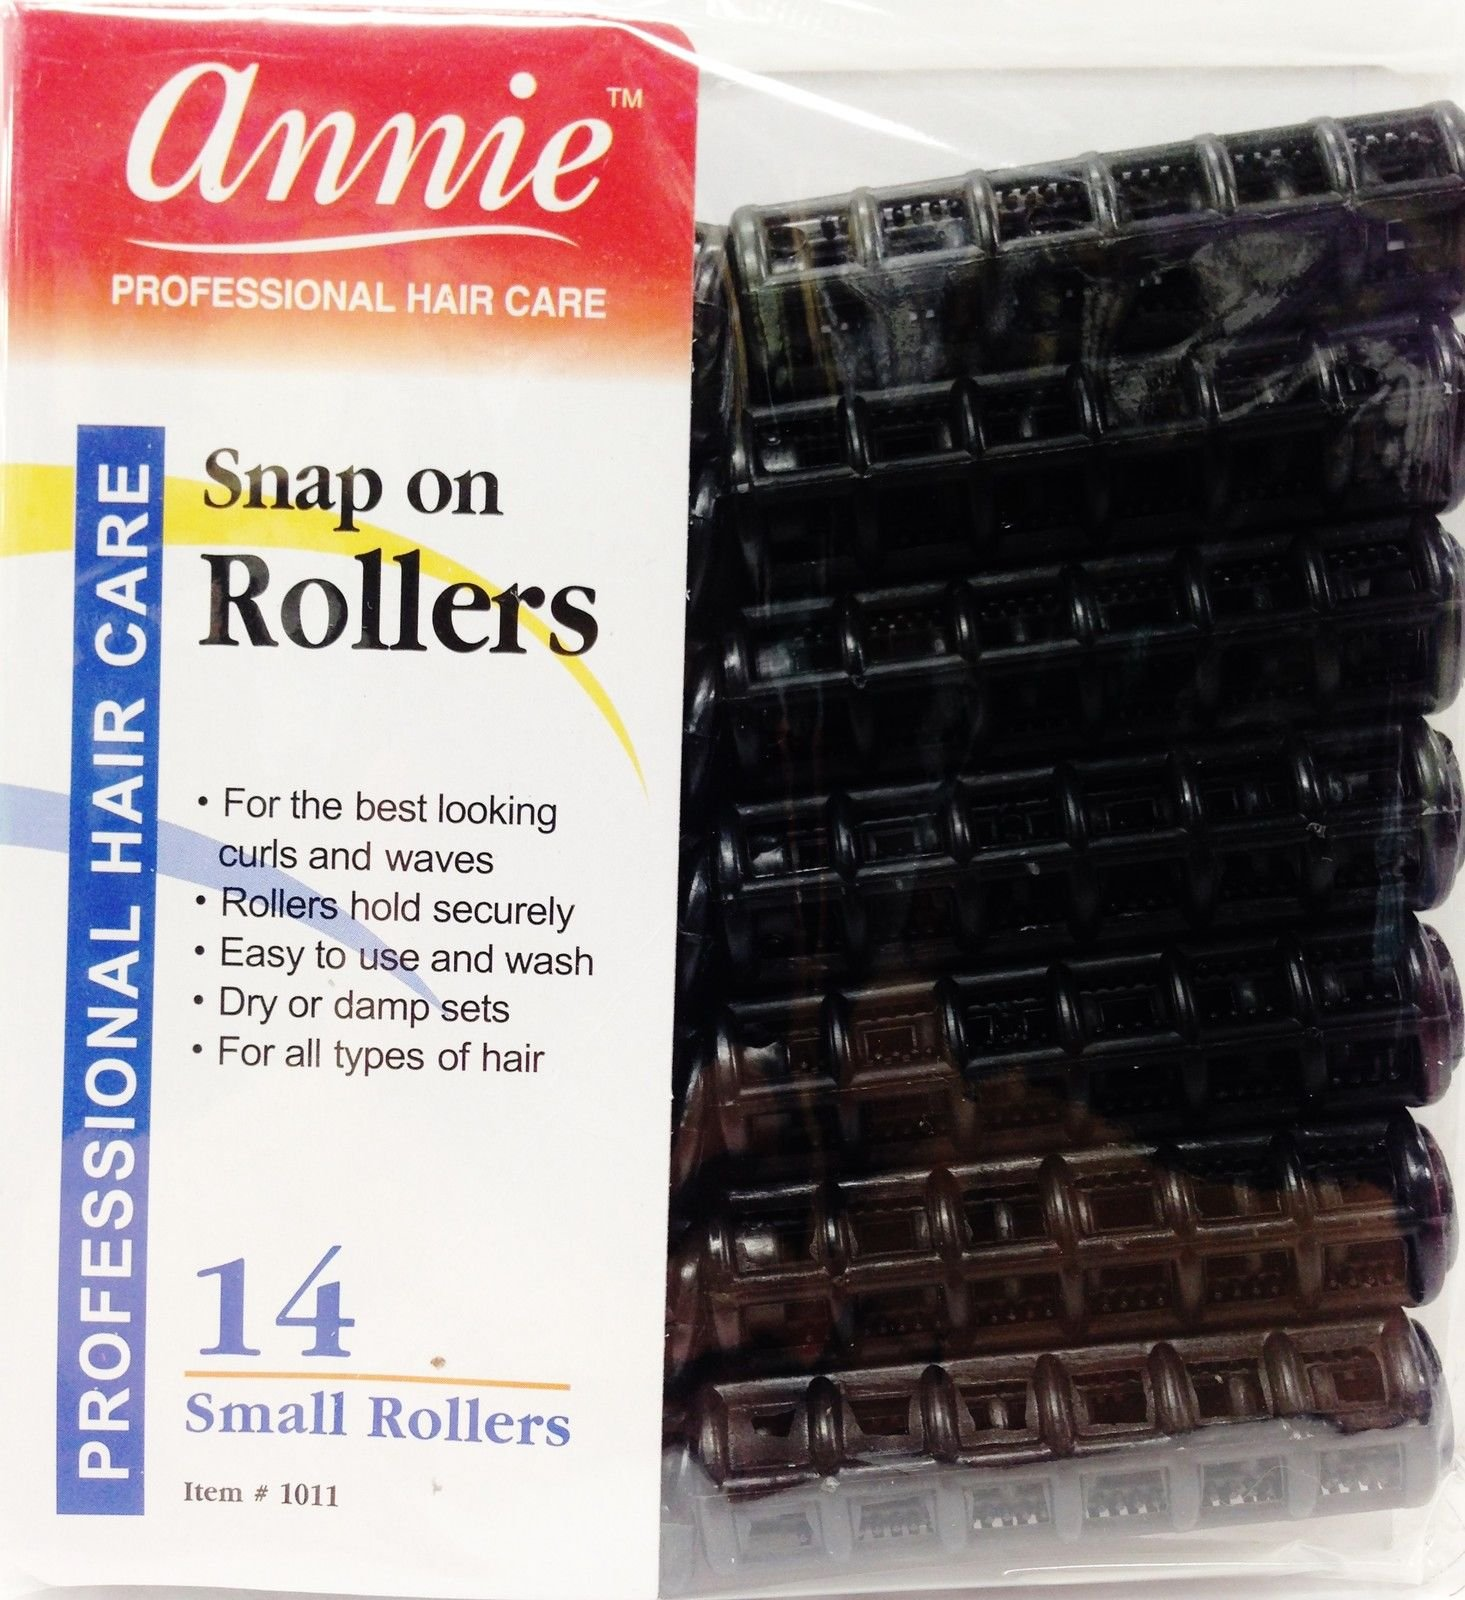 Annie Snap on Rollers 14 Small Rollers 1/2'' No Pins or Clips Needed Black #1011